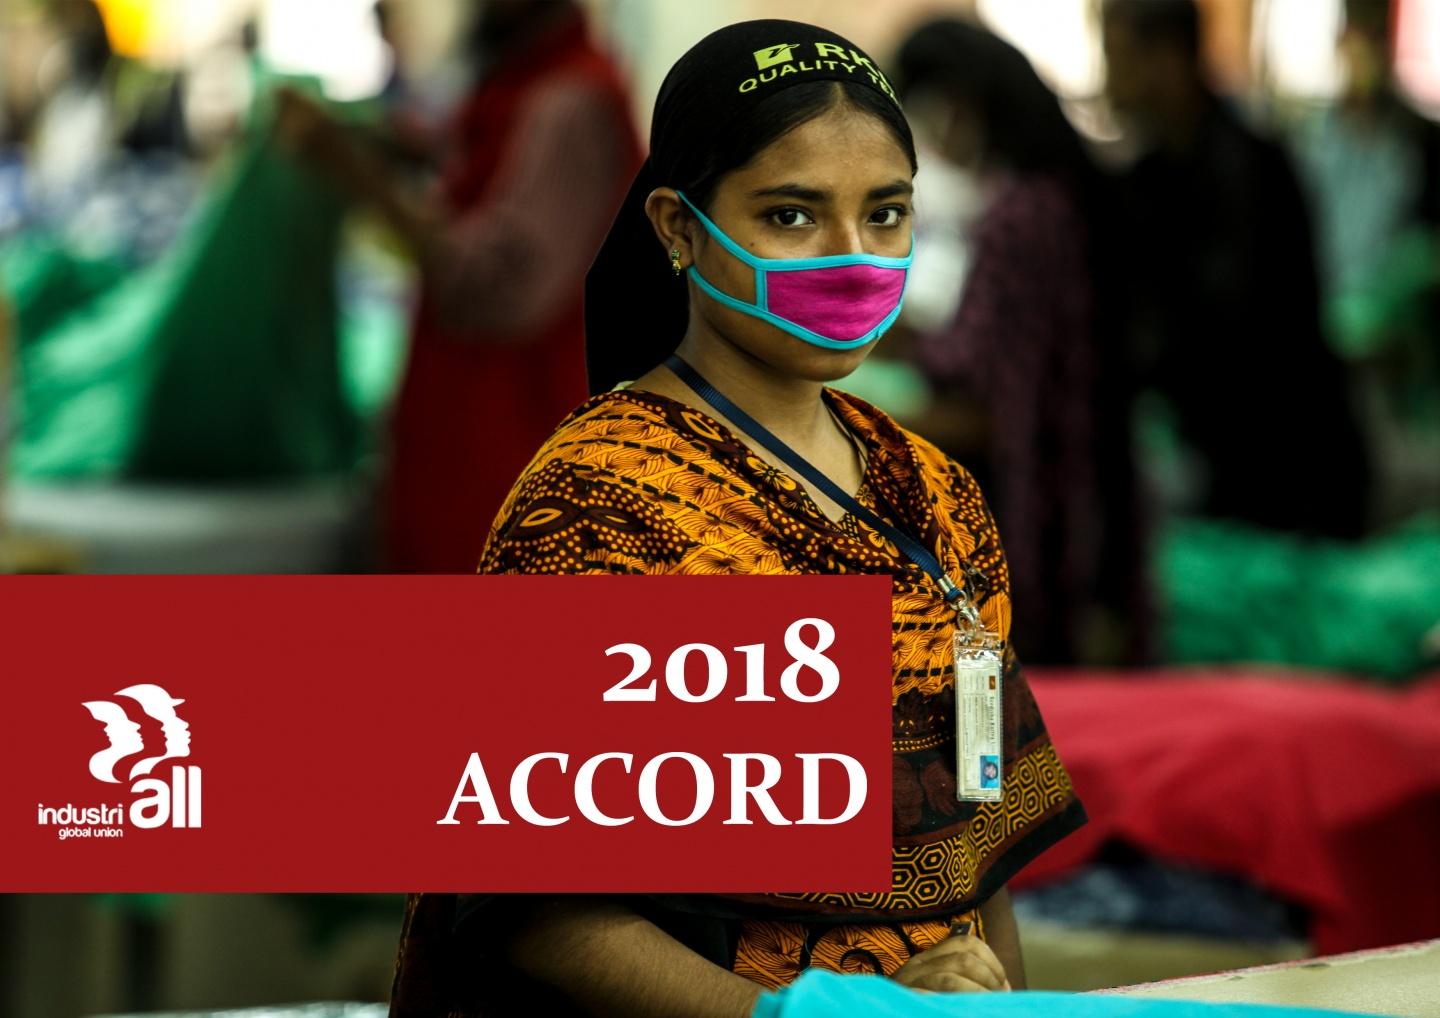 Signatories to the 2018 Accord   IndustriALL